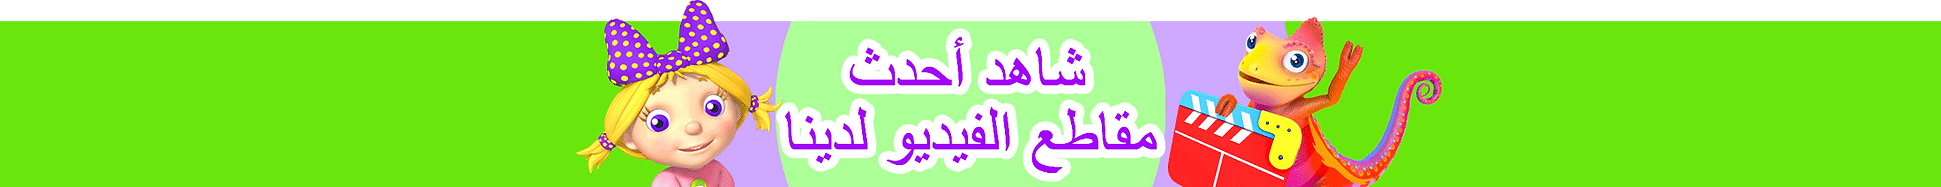 Arabic---Watch-Our-Latest-Videos-Banner.